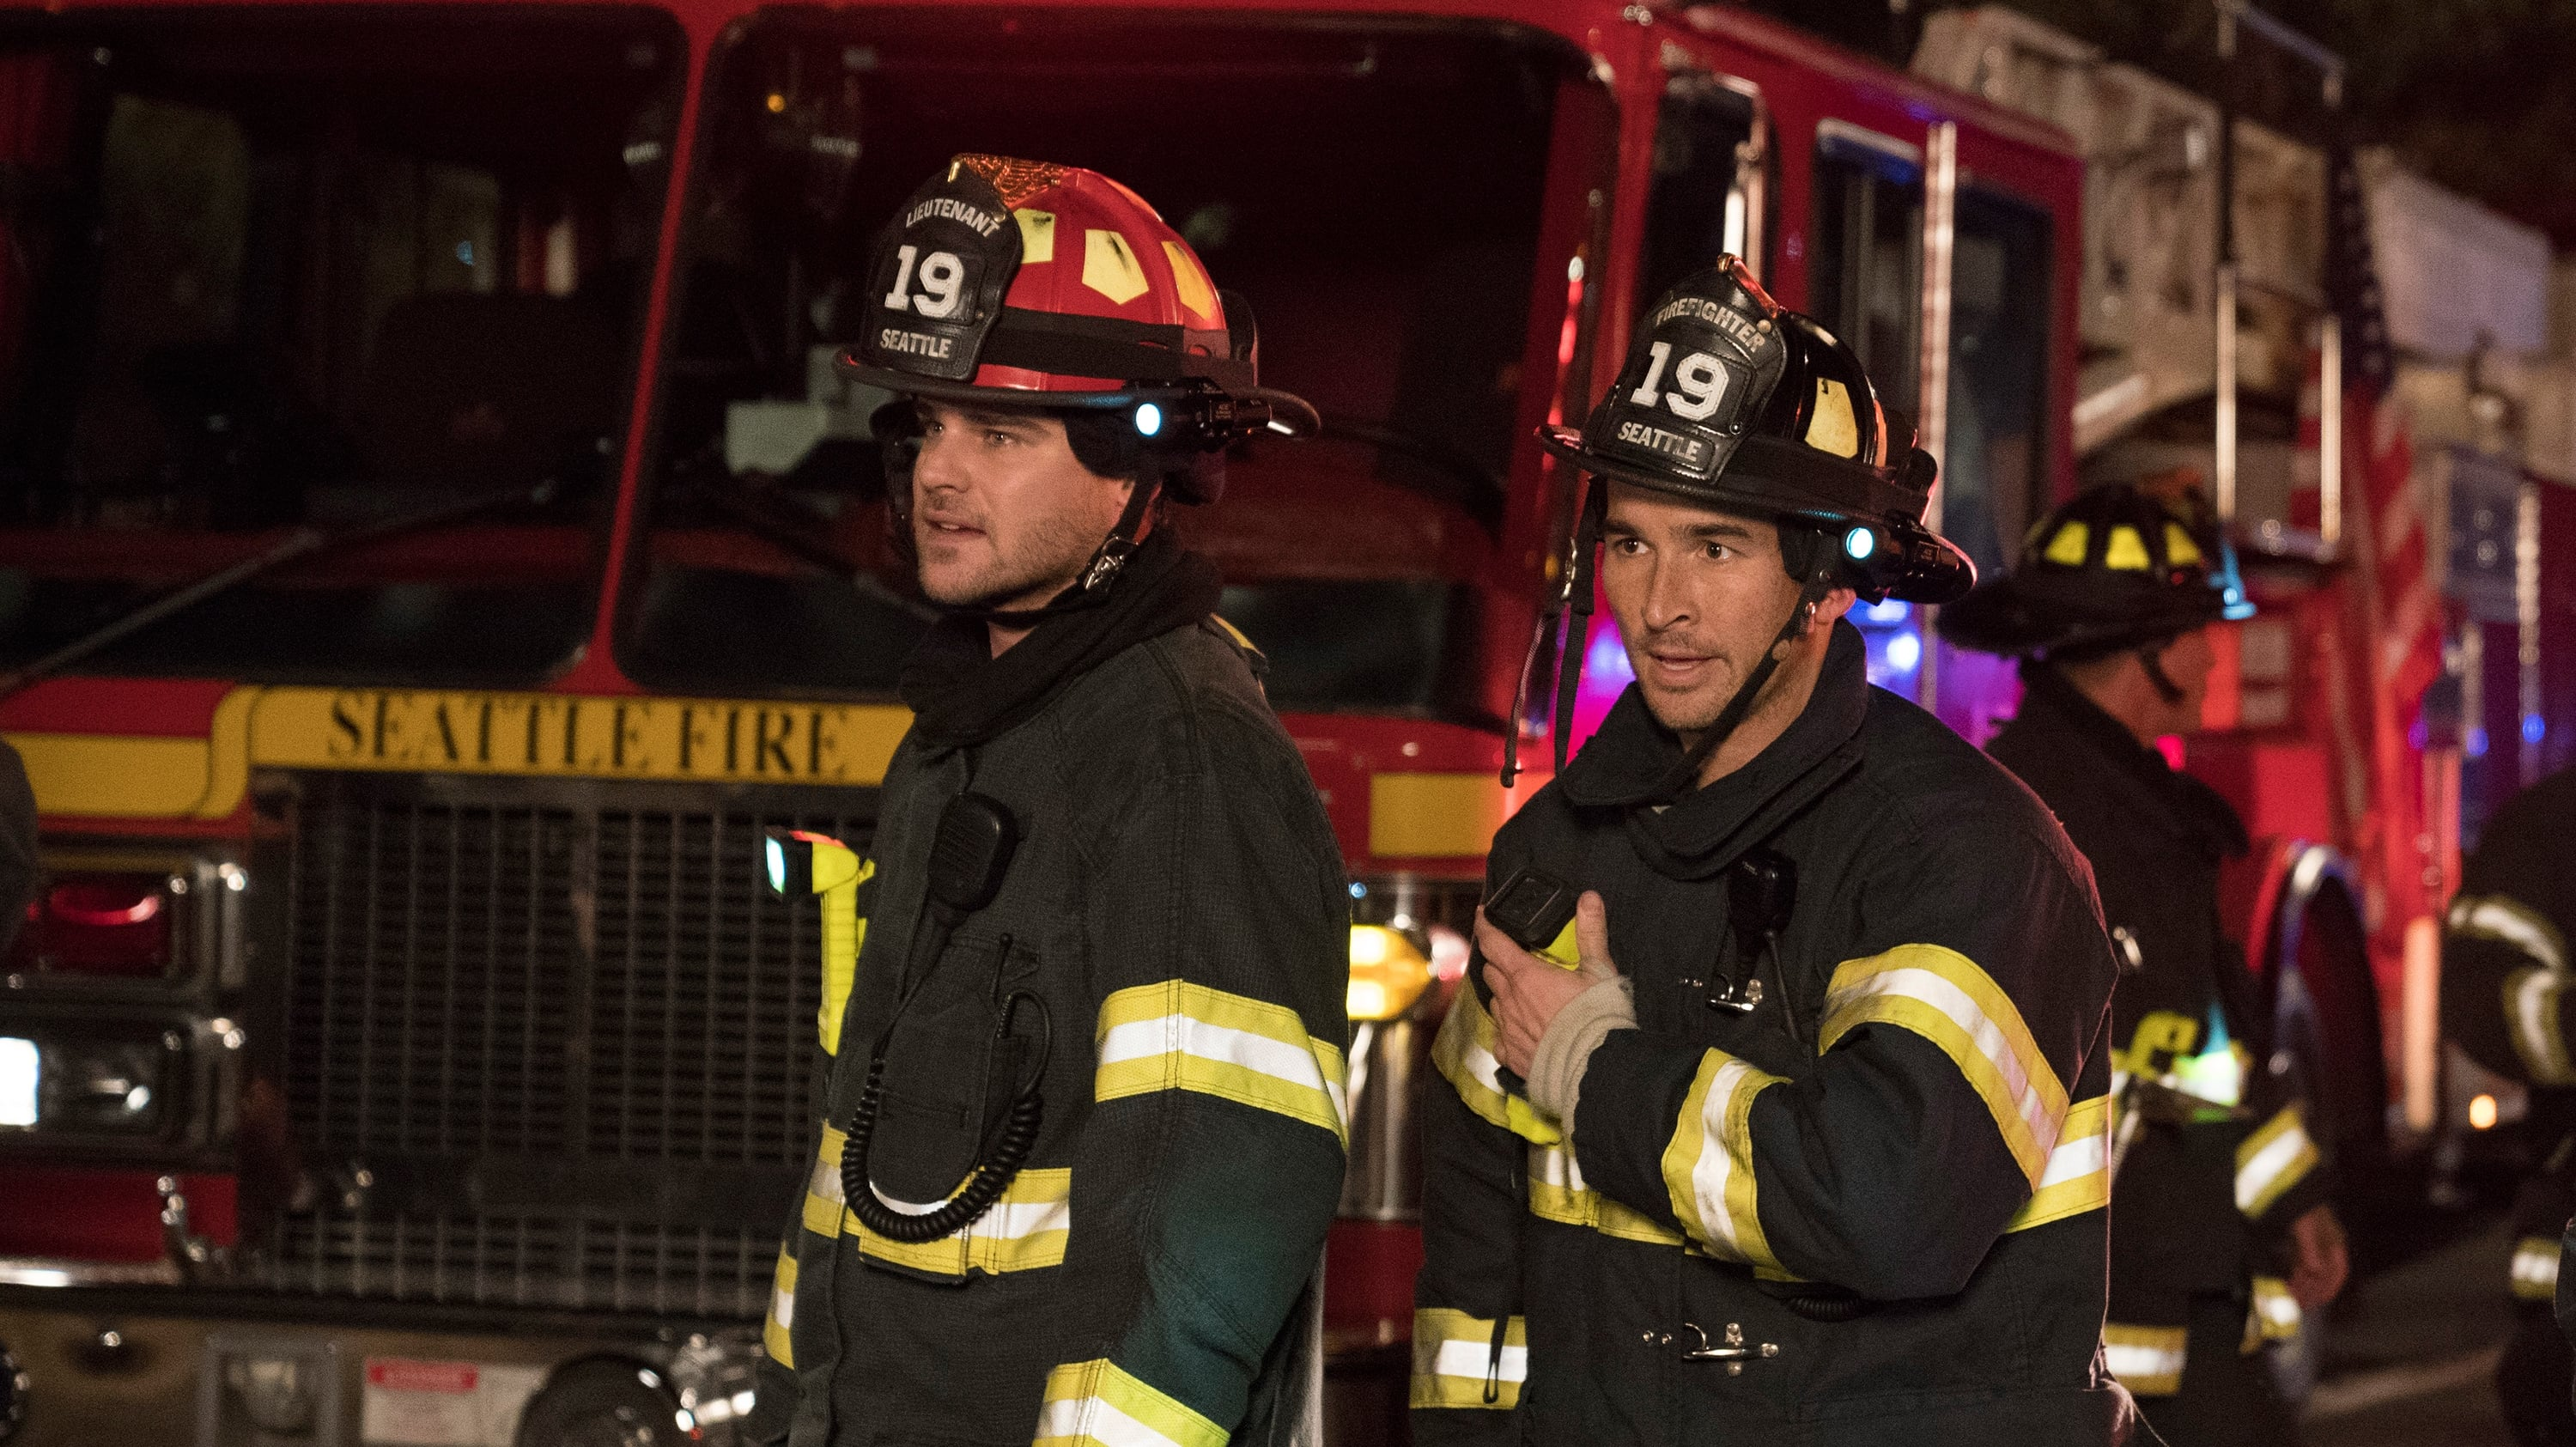 Seattle Firefighter Serie